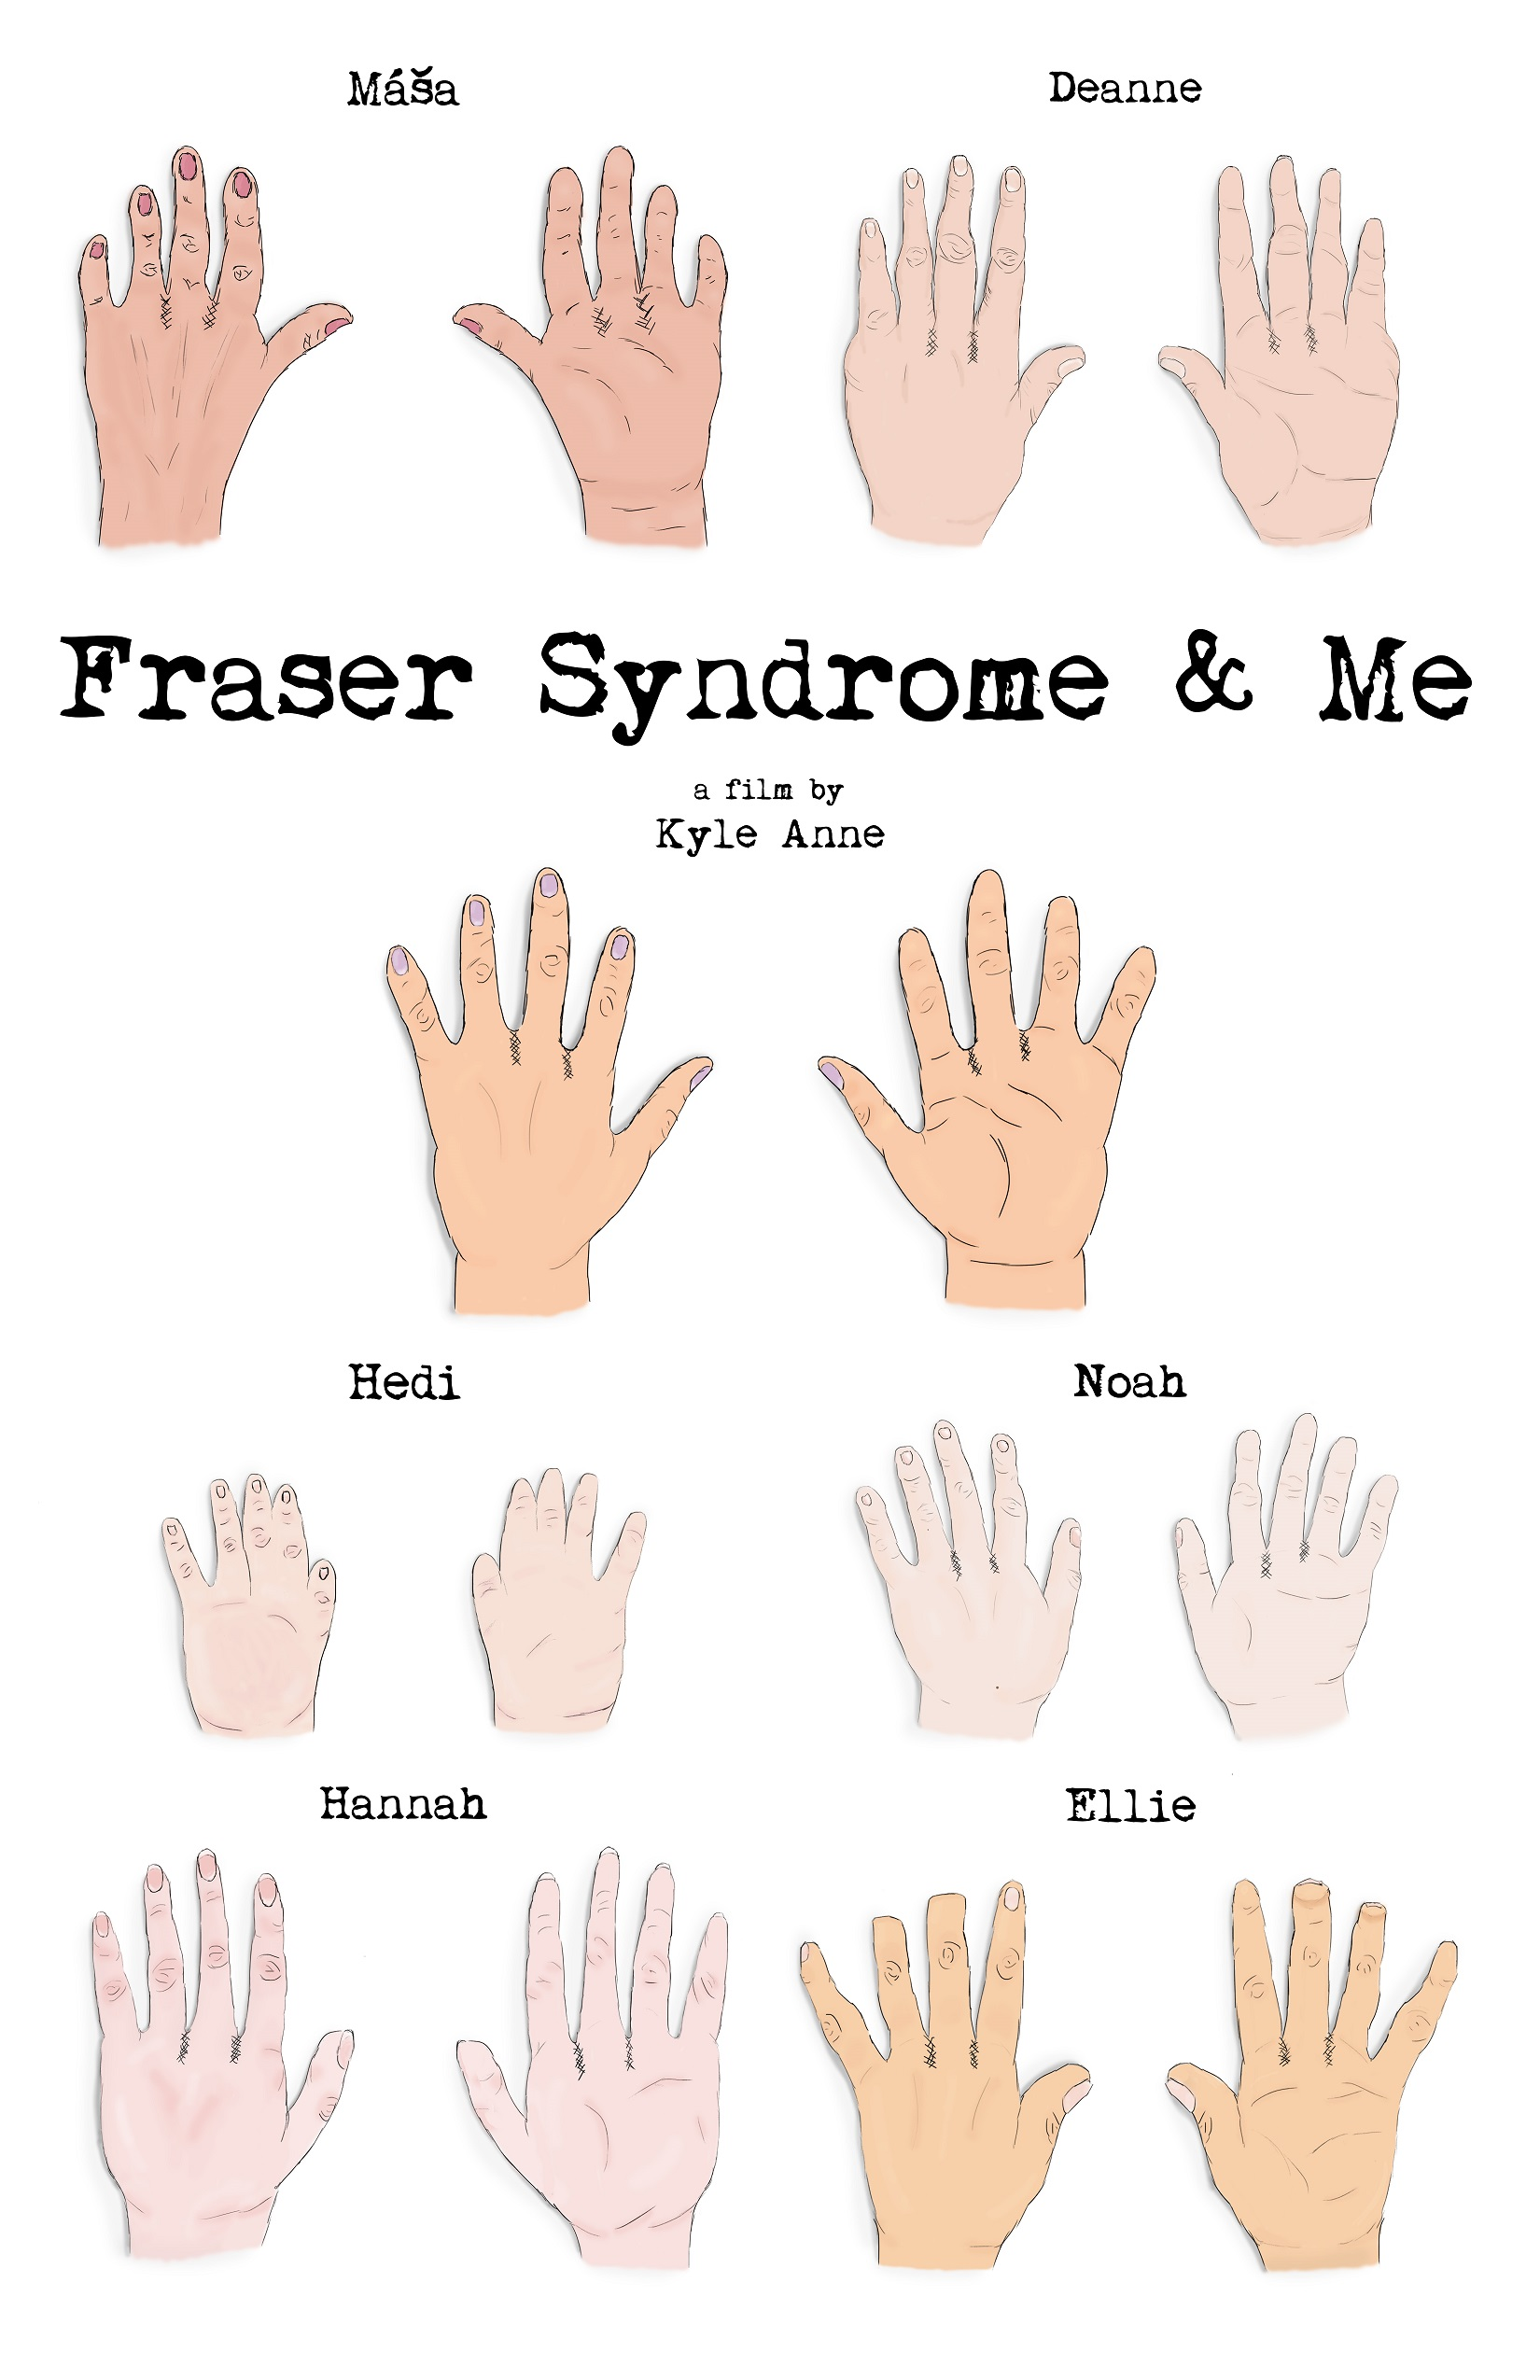 Fraser Syndrome & Me poster (Art Credit: Rachel Walters)